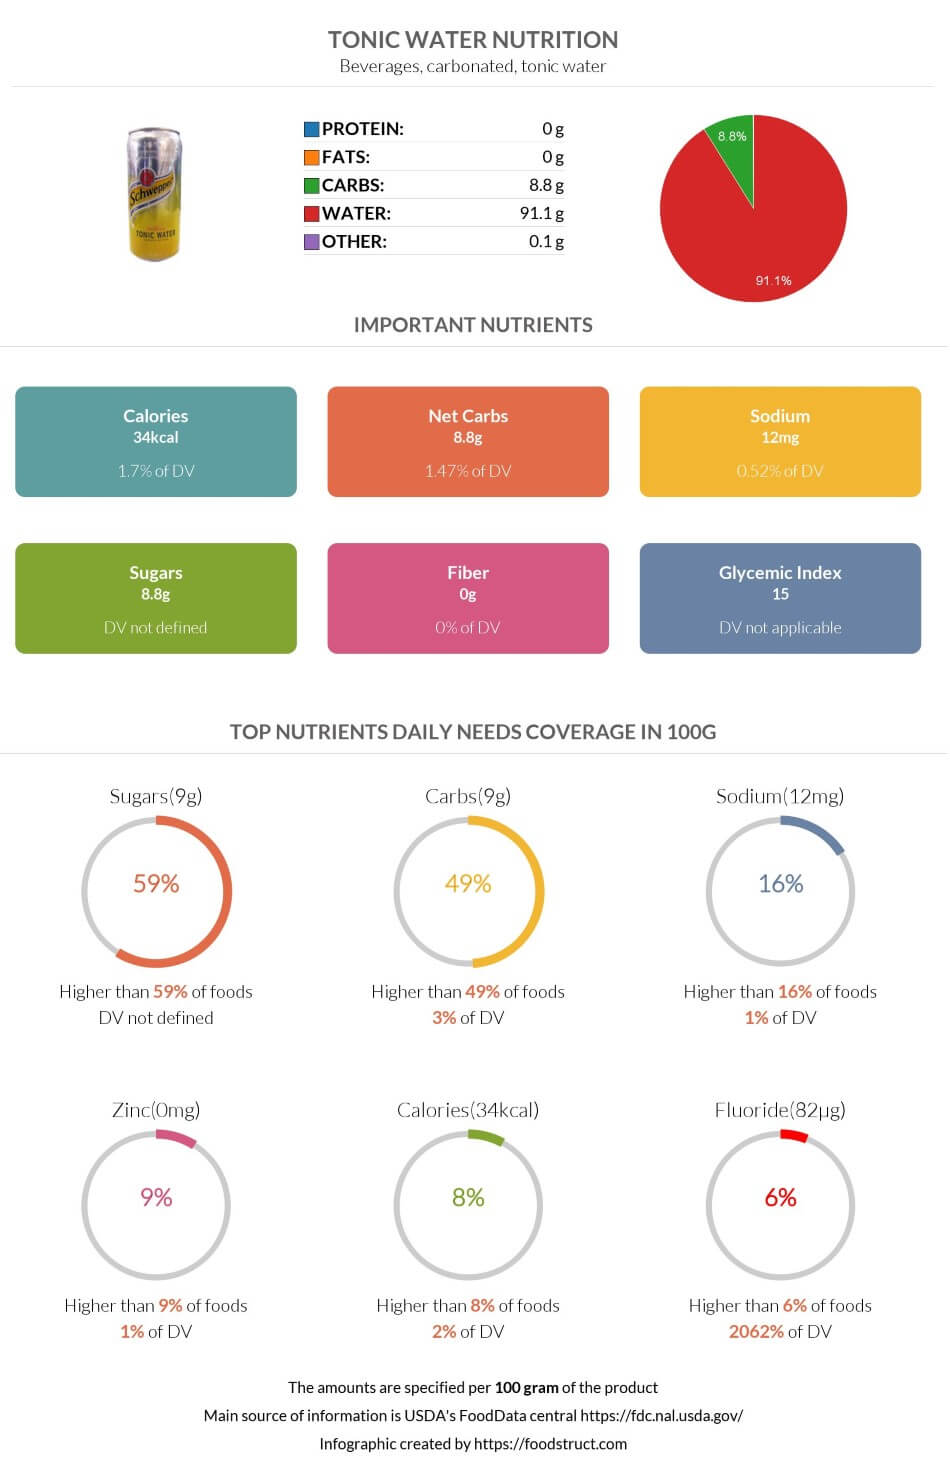 Tonic water nutrition infographic